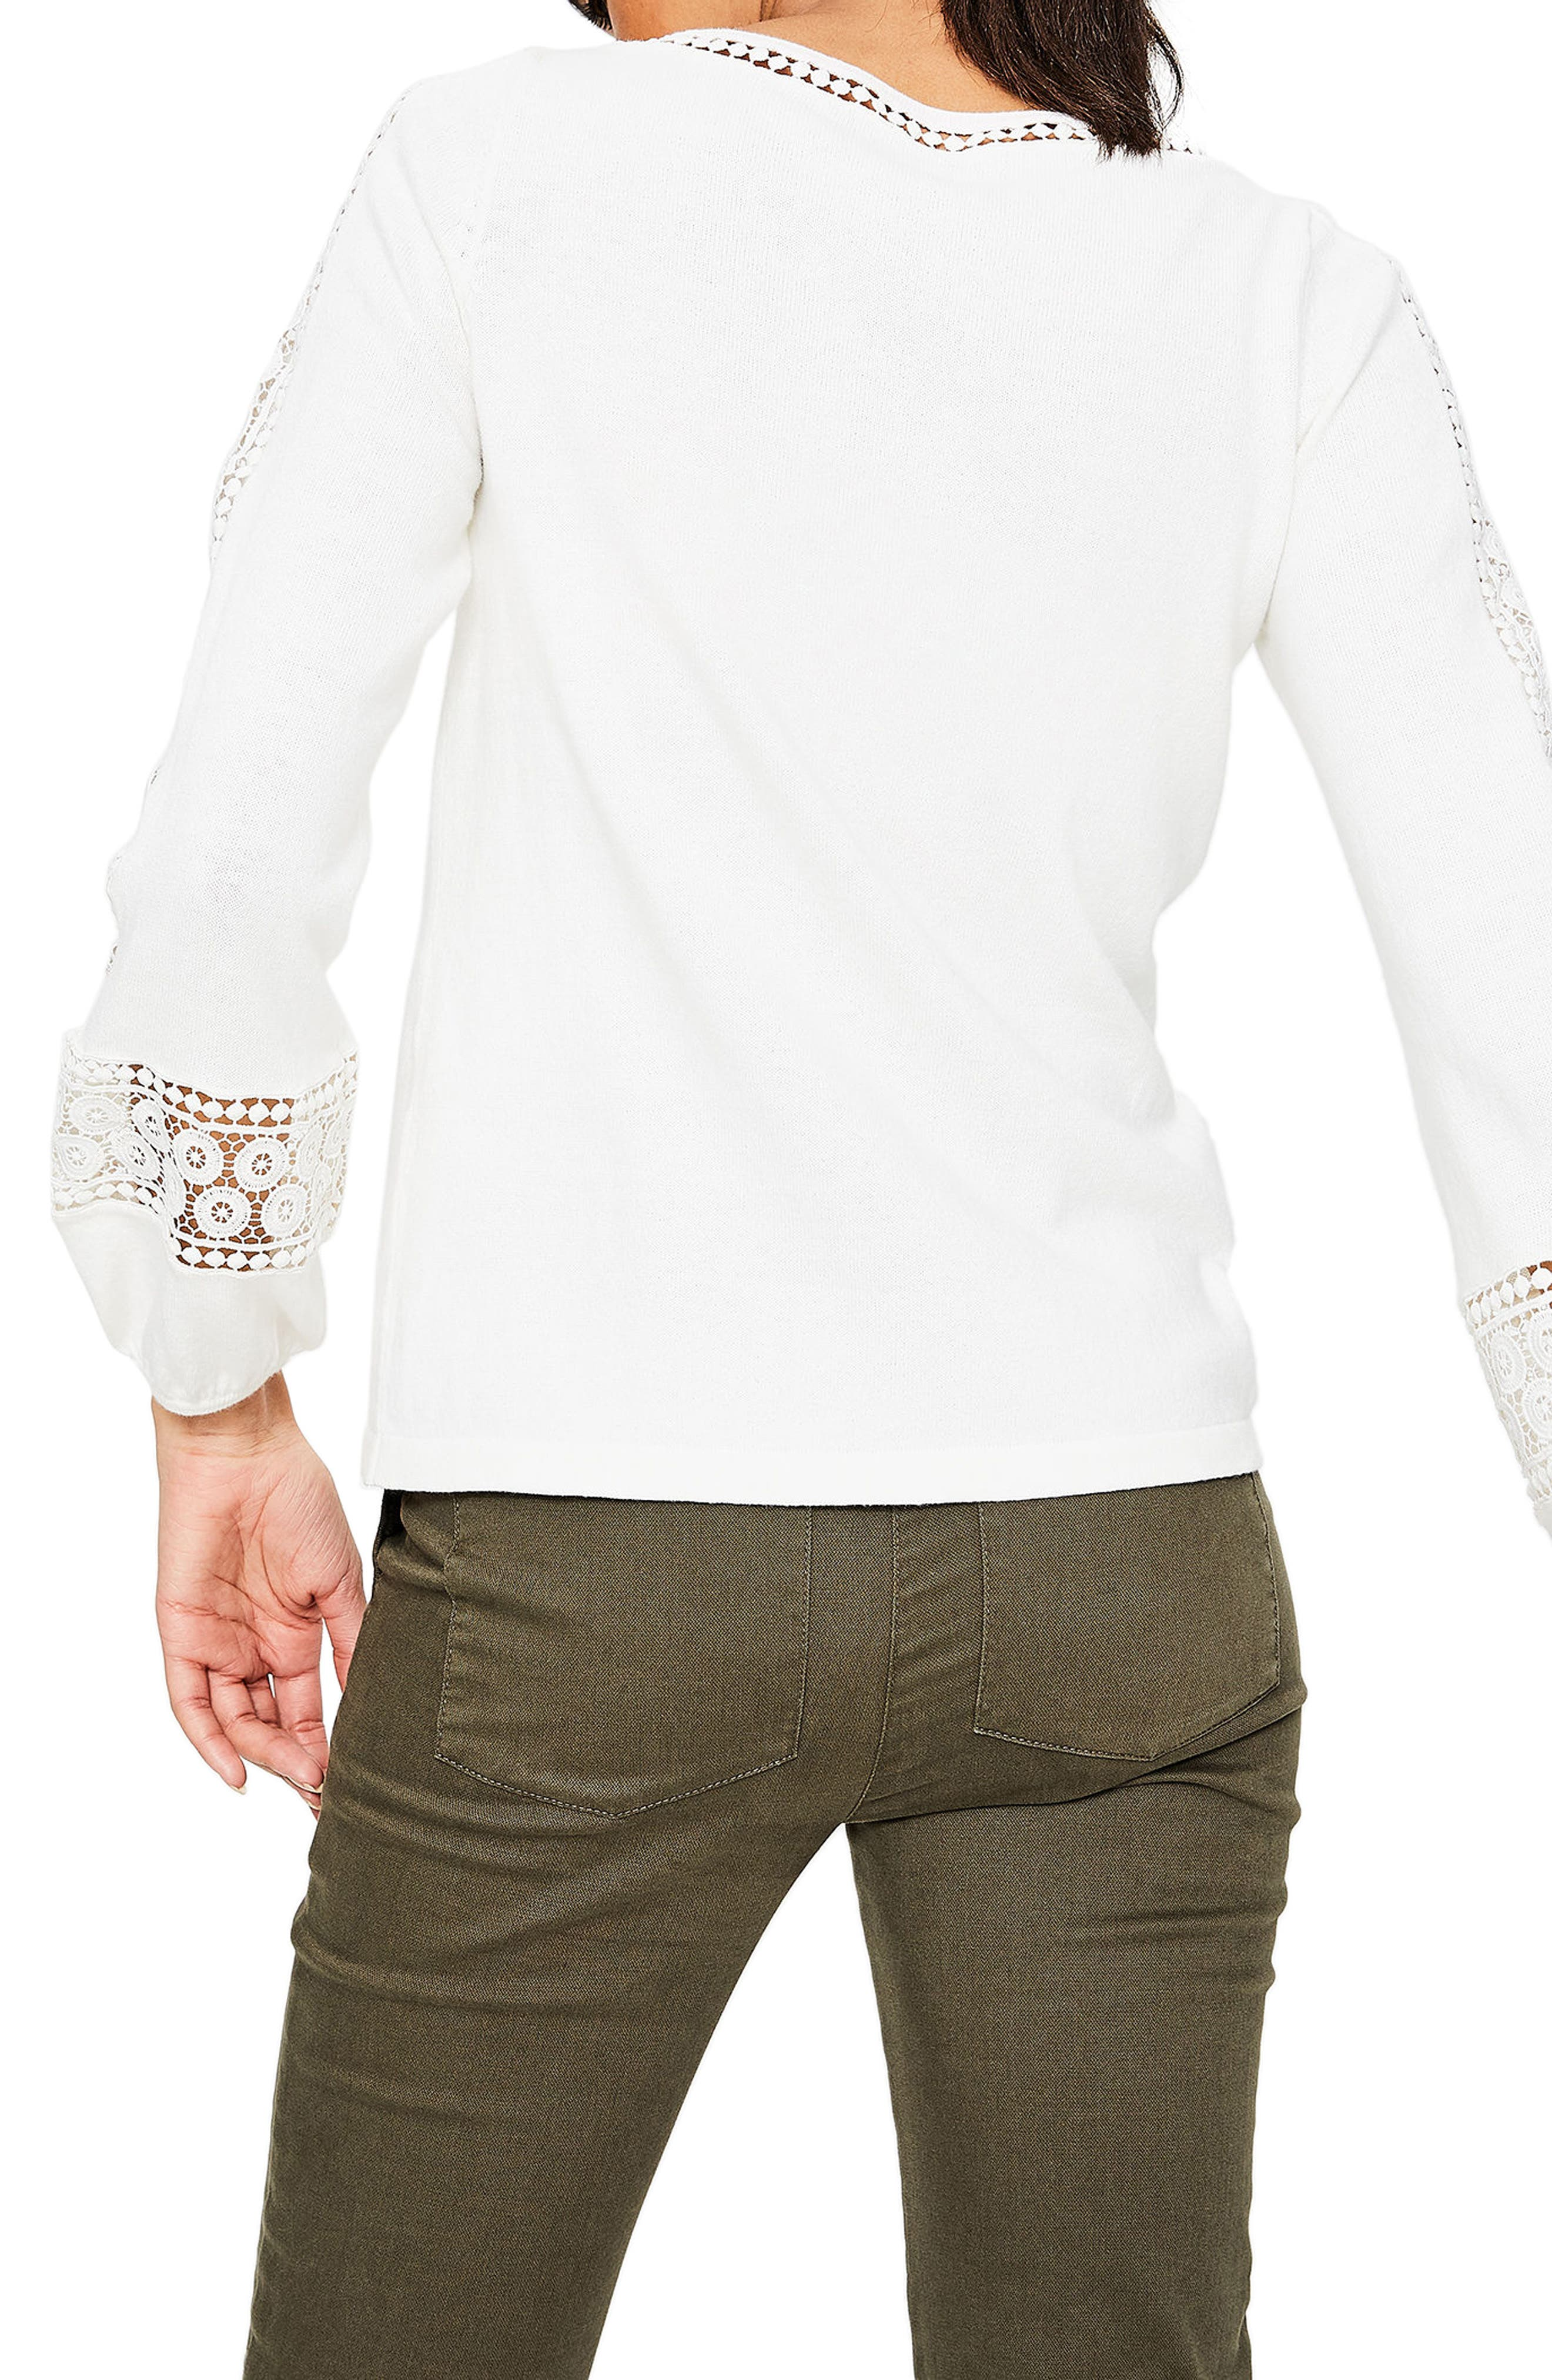 Lace Inset Cotton Sweater,                             Alternate thumbnail 2, color,                             Ivory